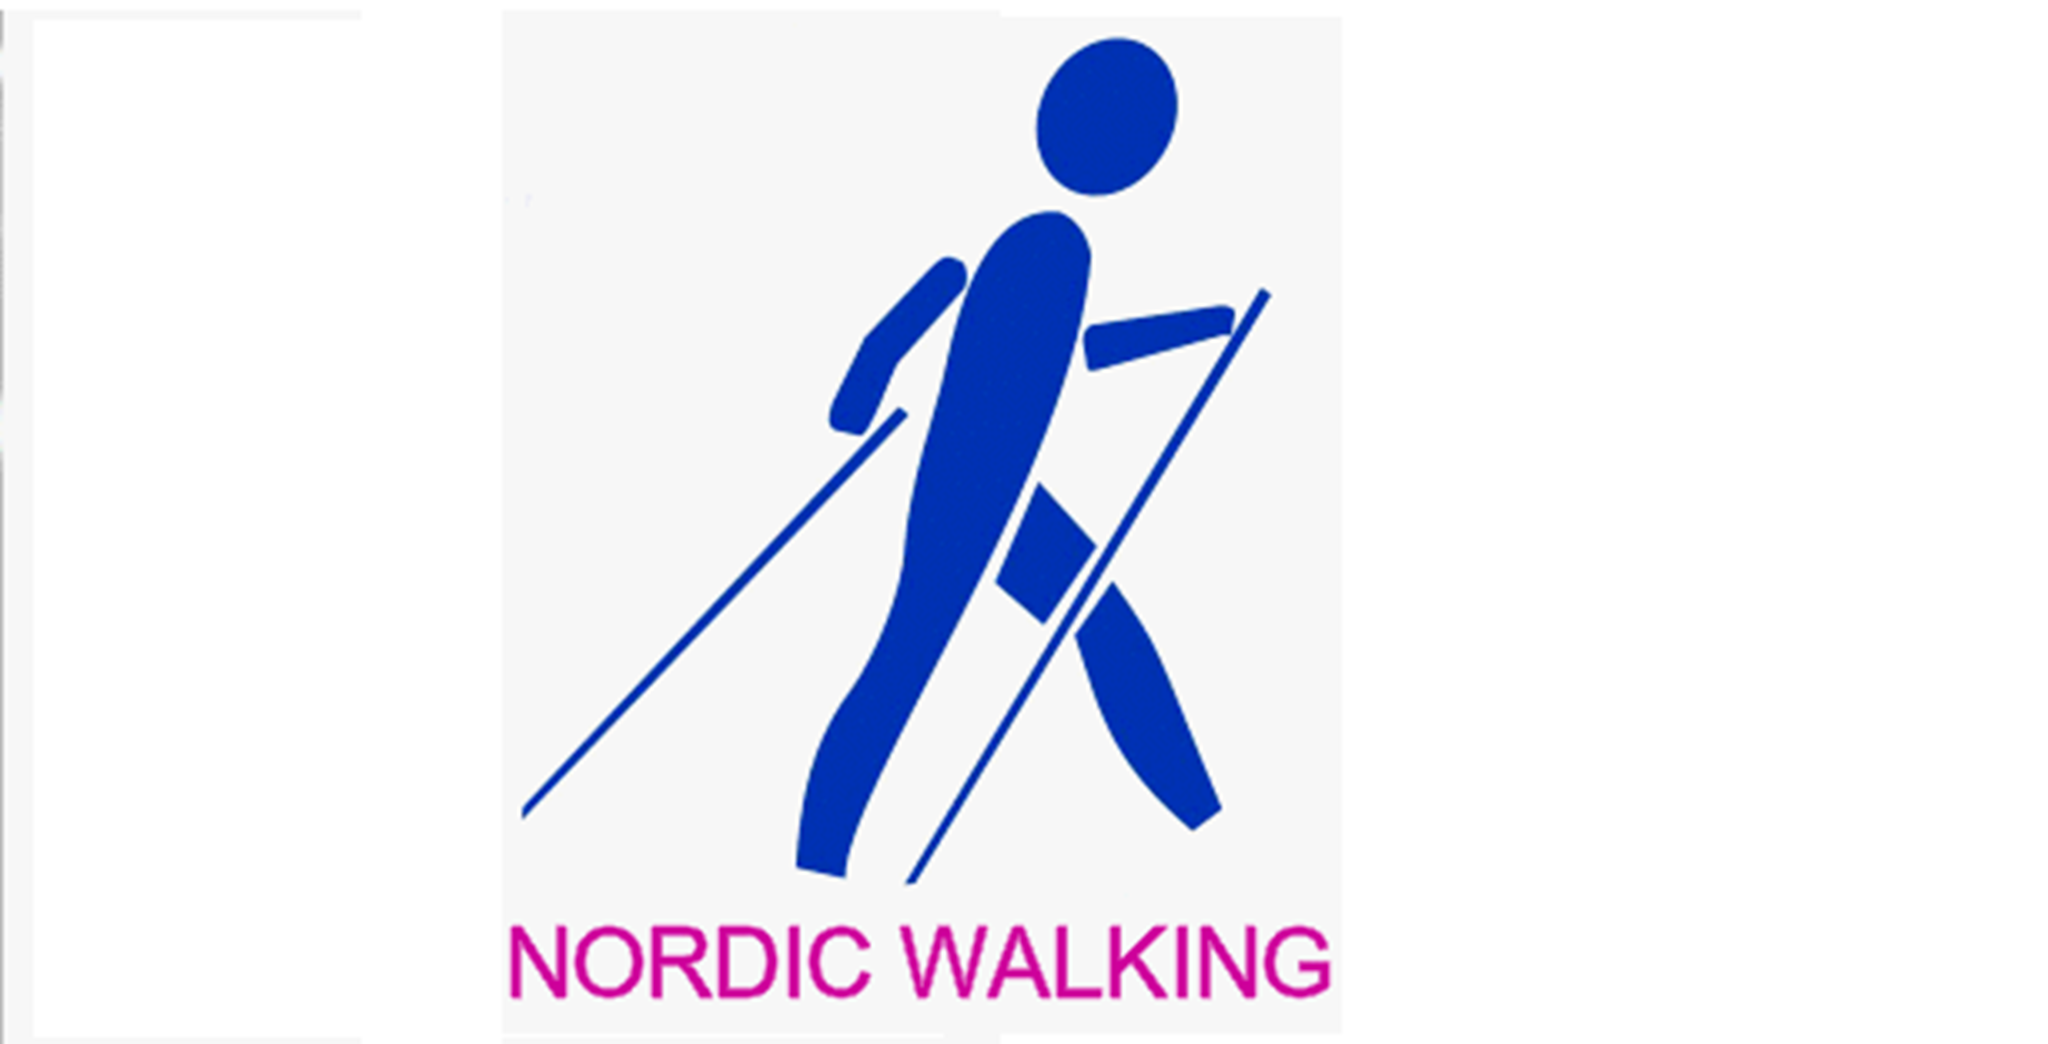 Nordic Walking - Logo.png (1)